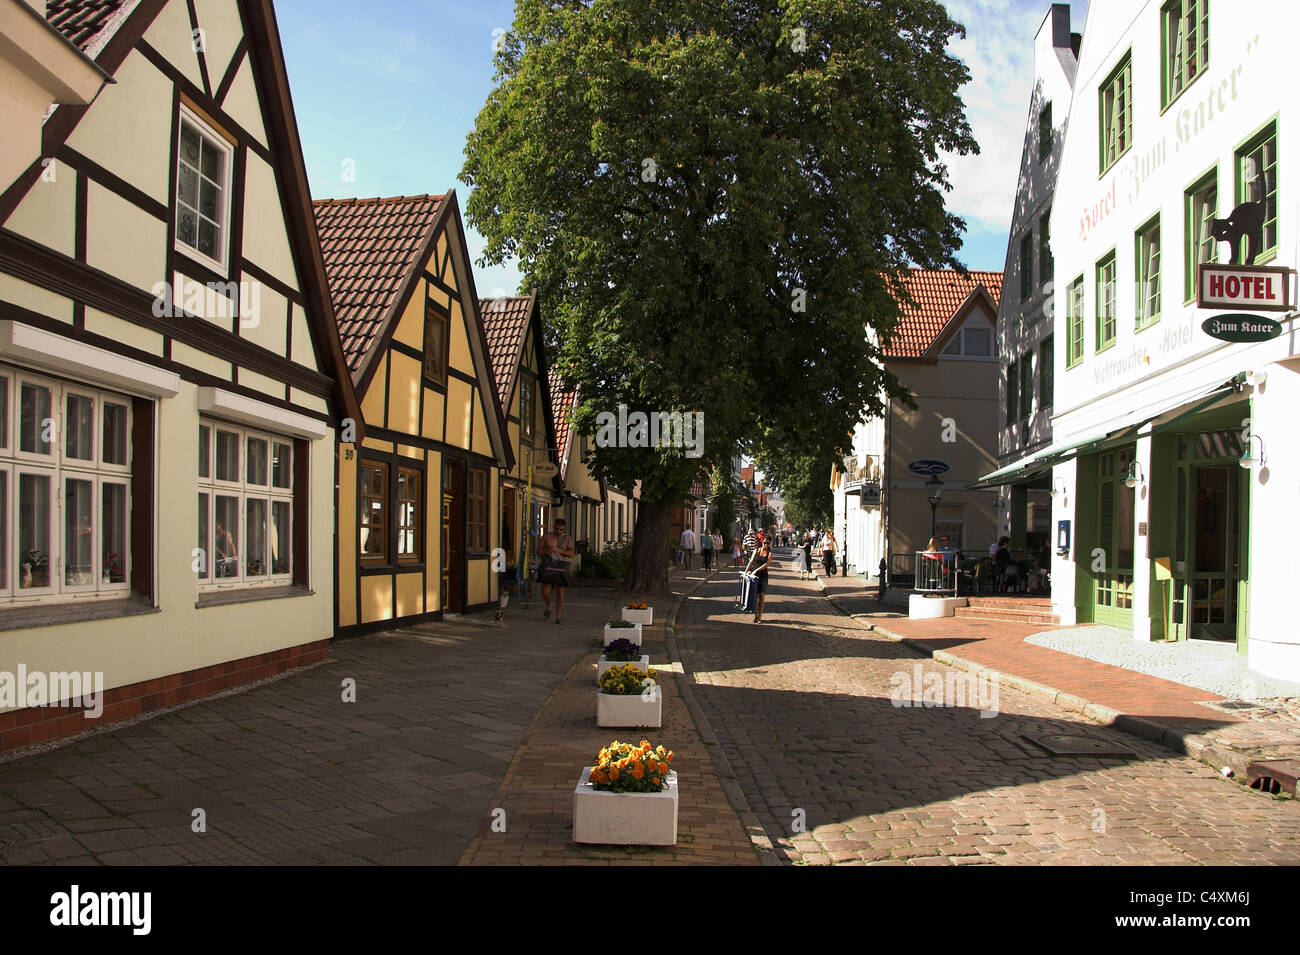 Cobbled street in the Old Town of Warnemunde, Germany Stock Photo